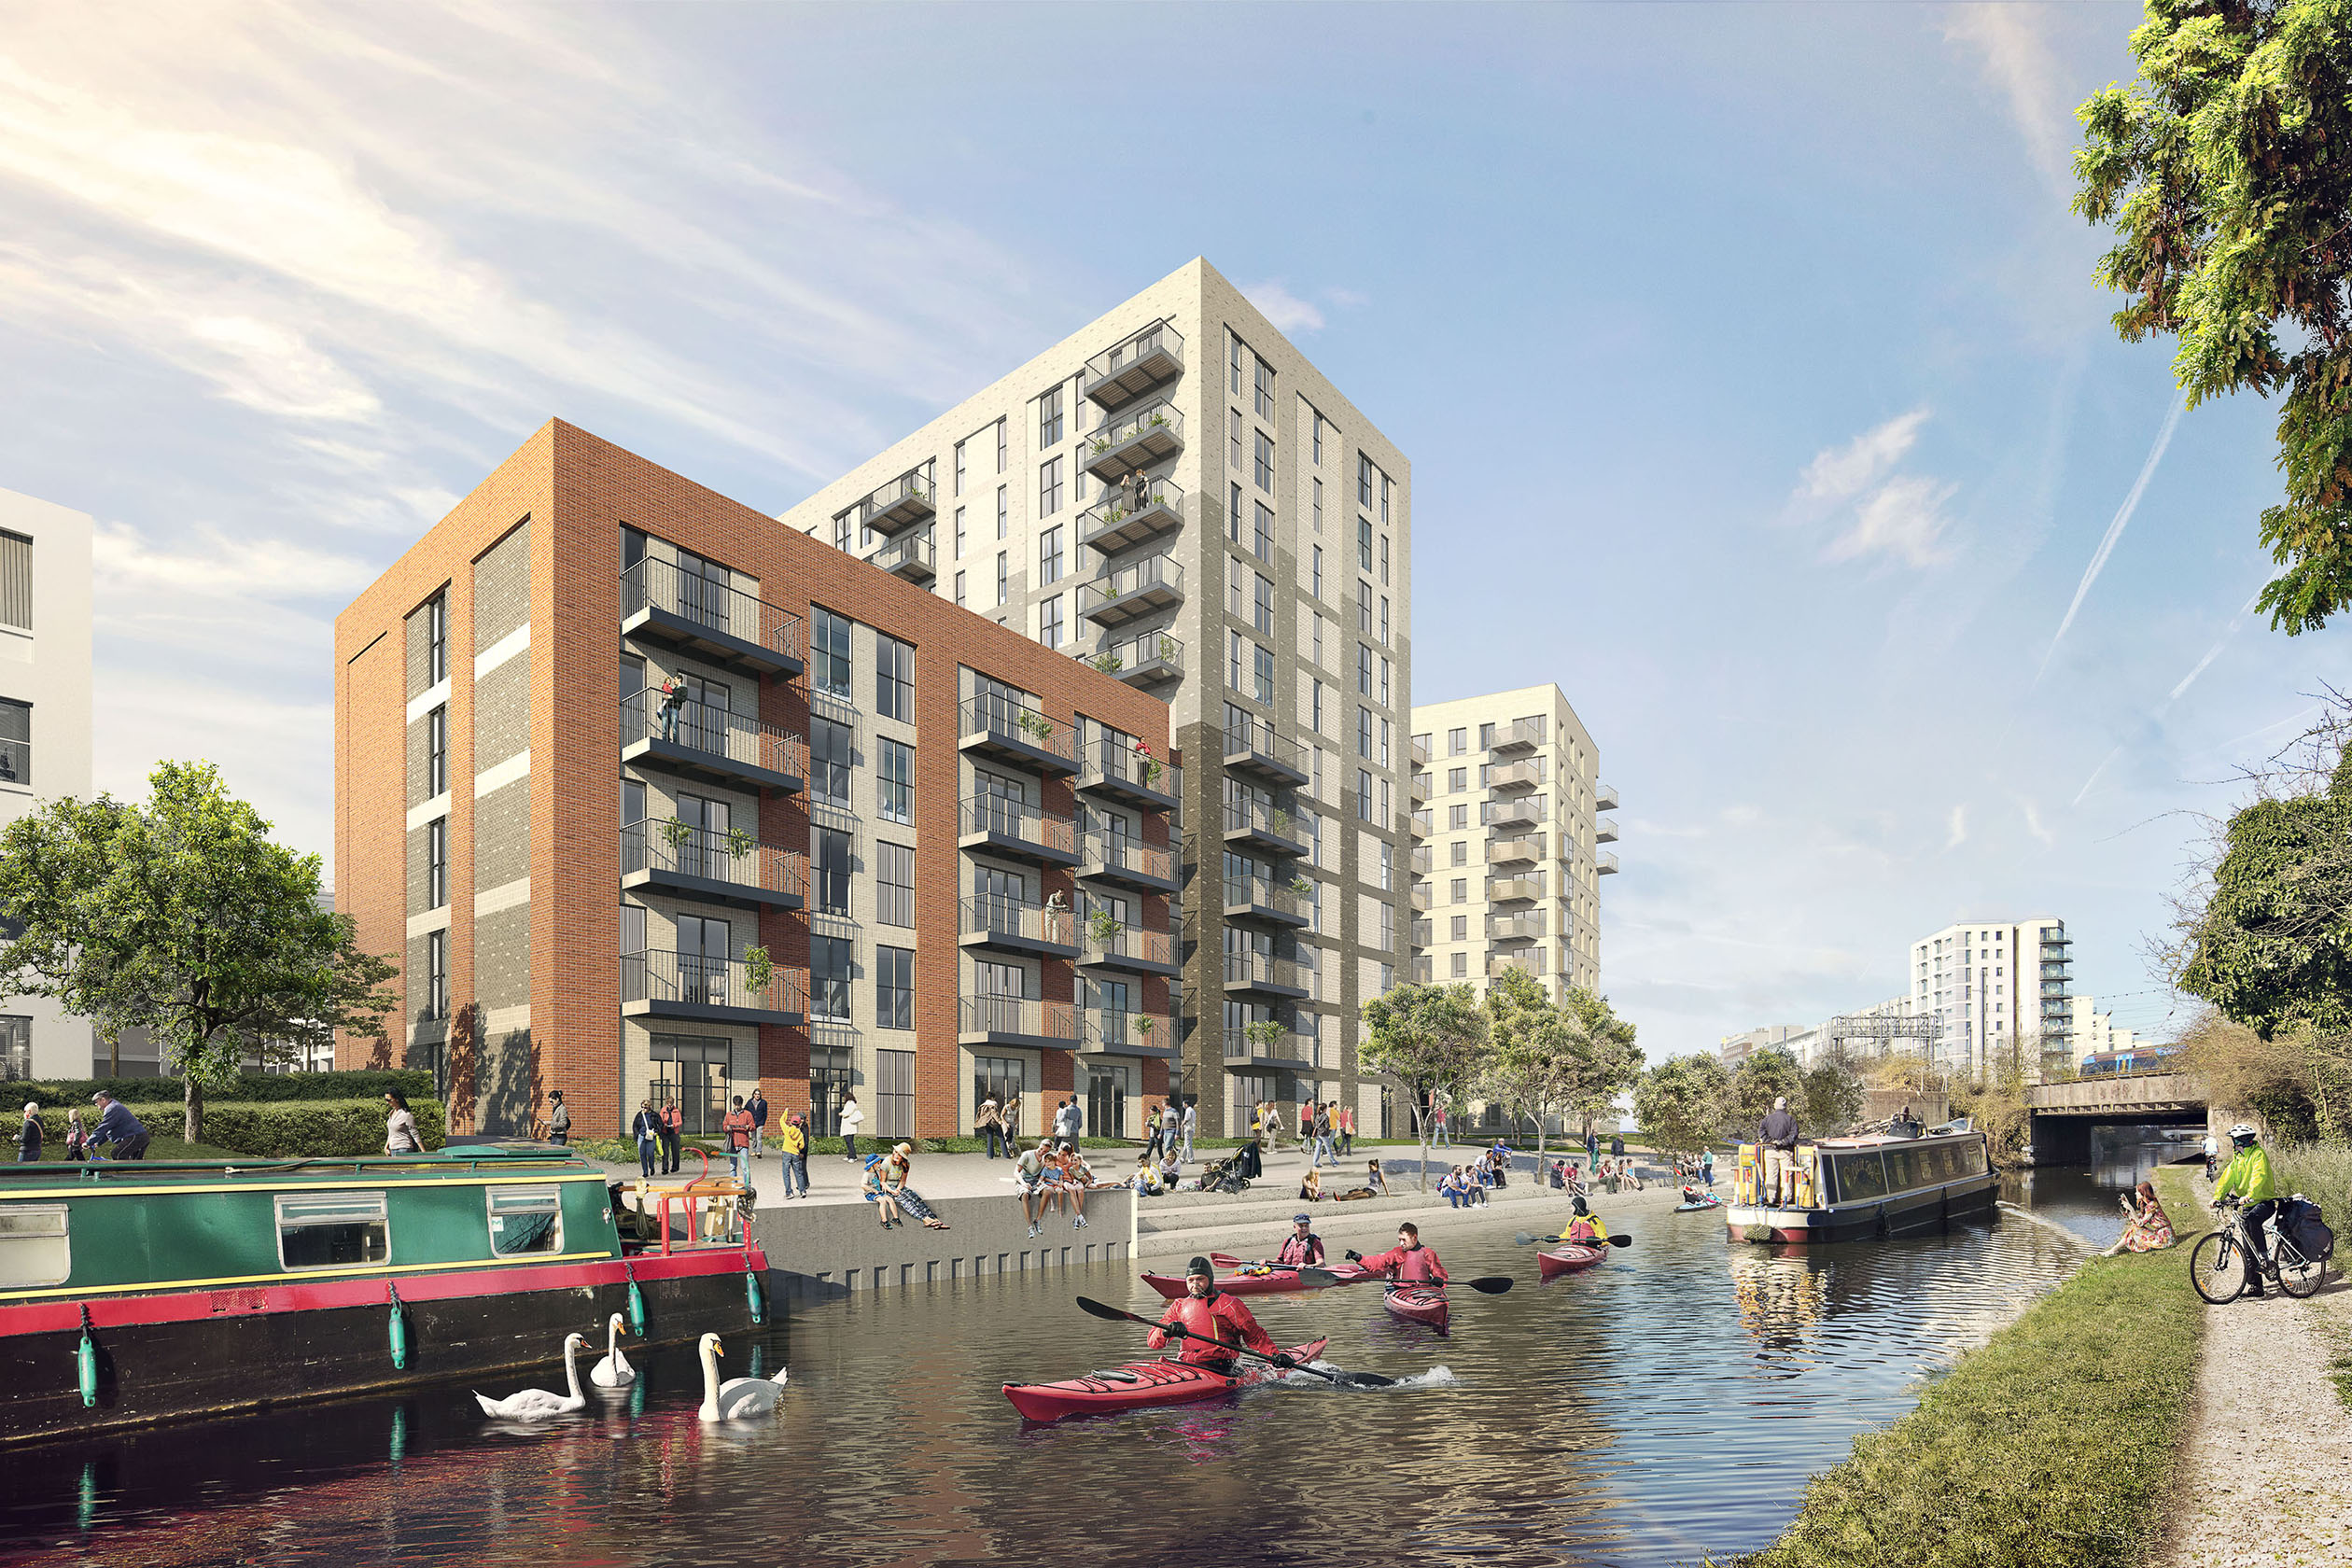 New Build Homes in Hayes